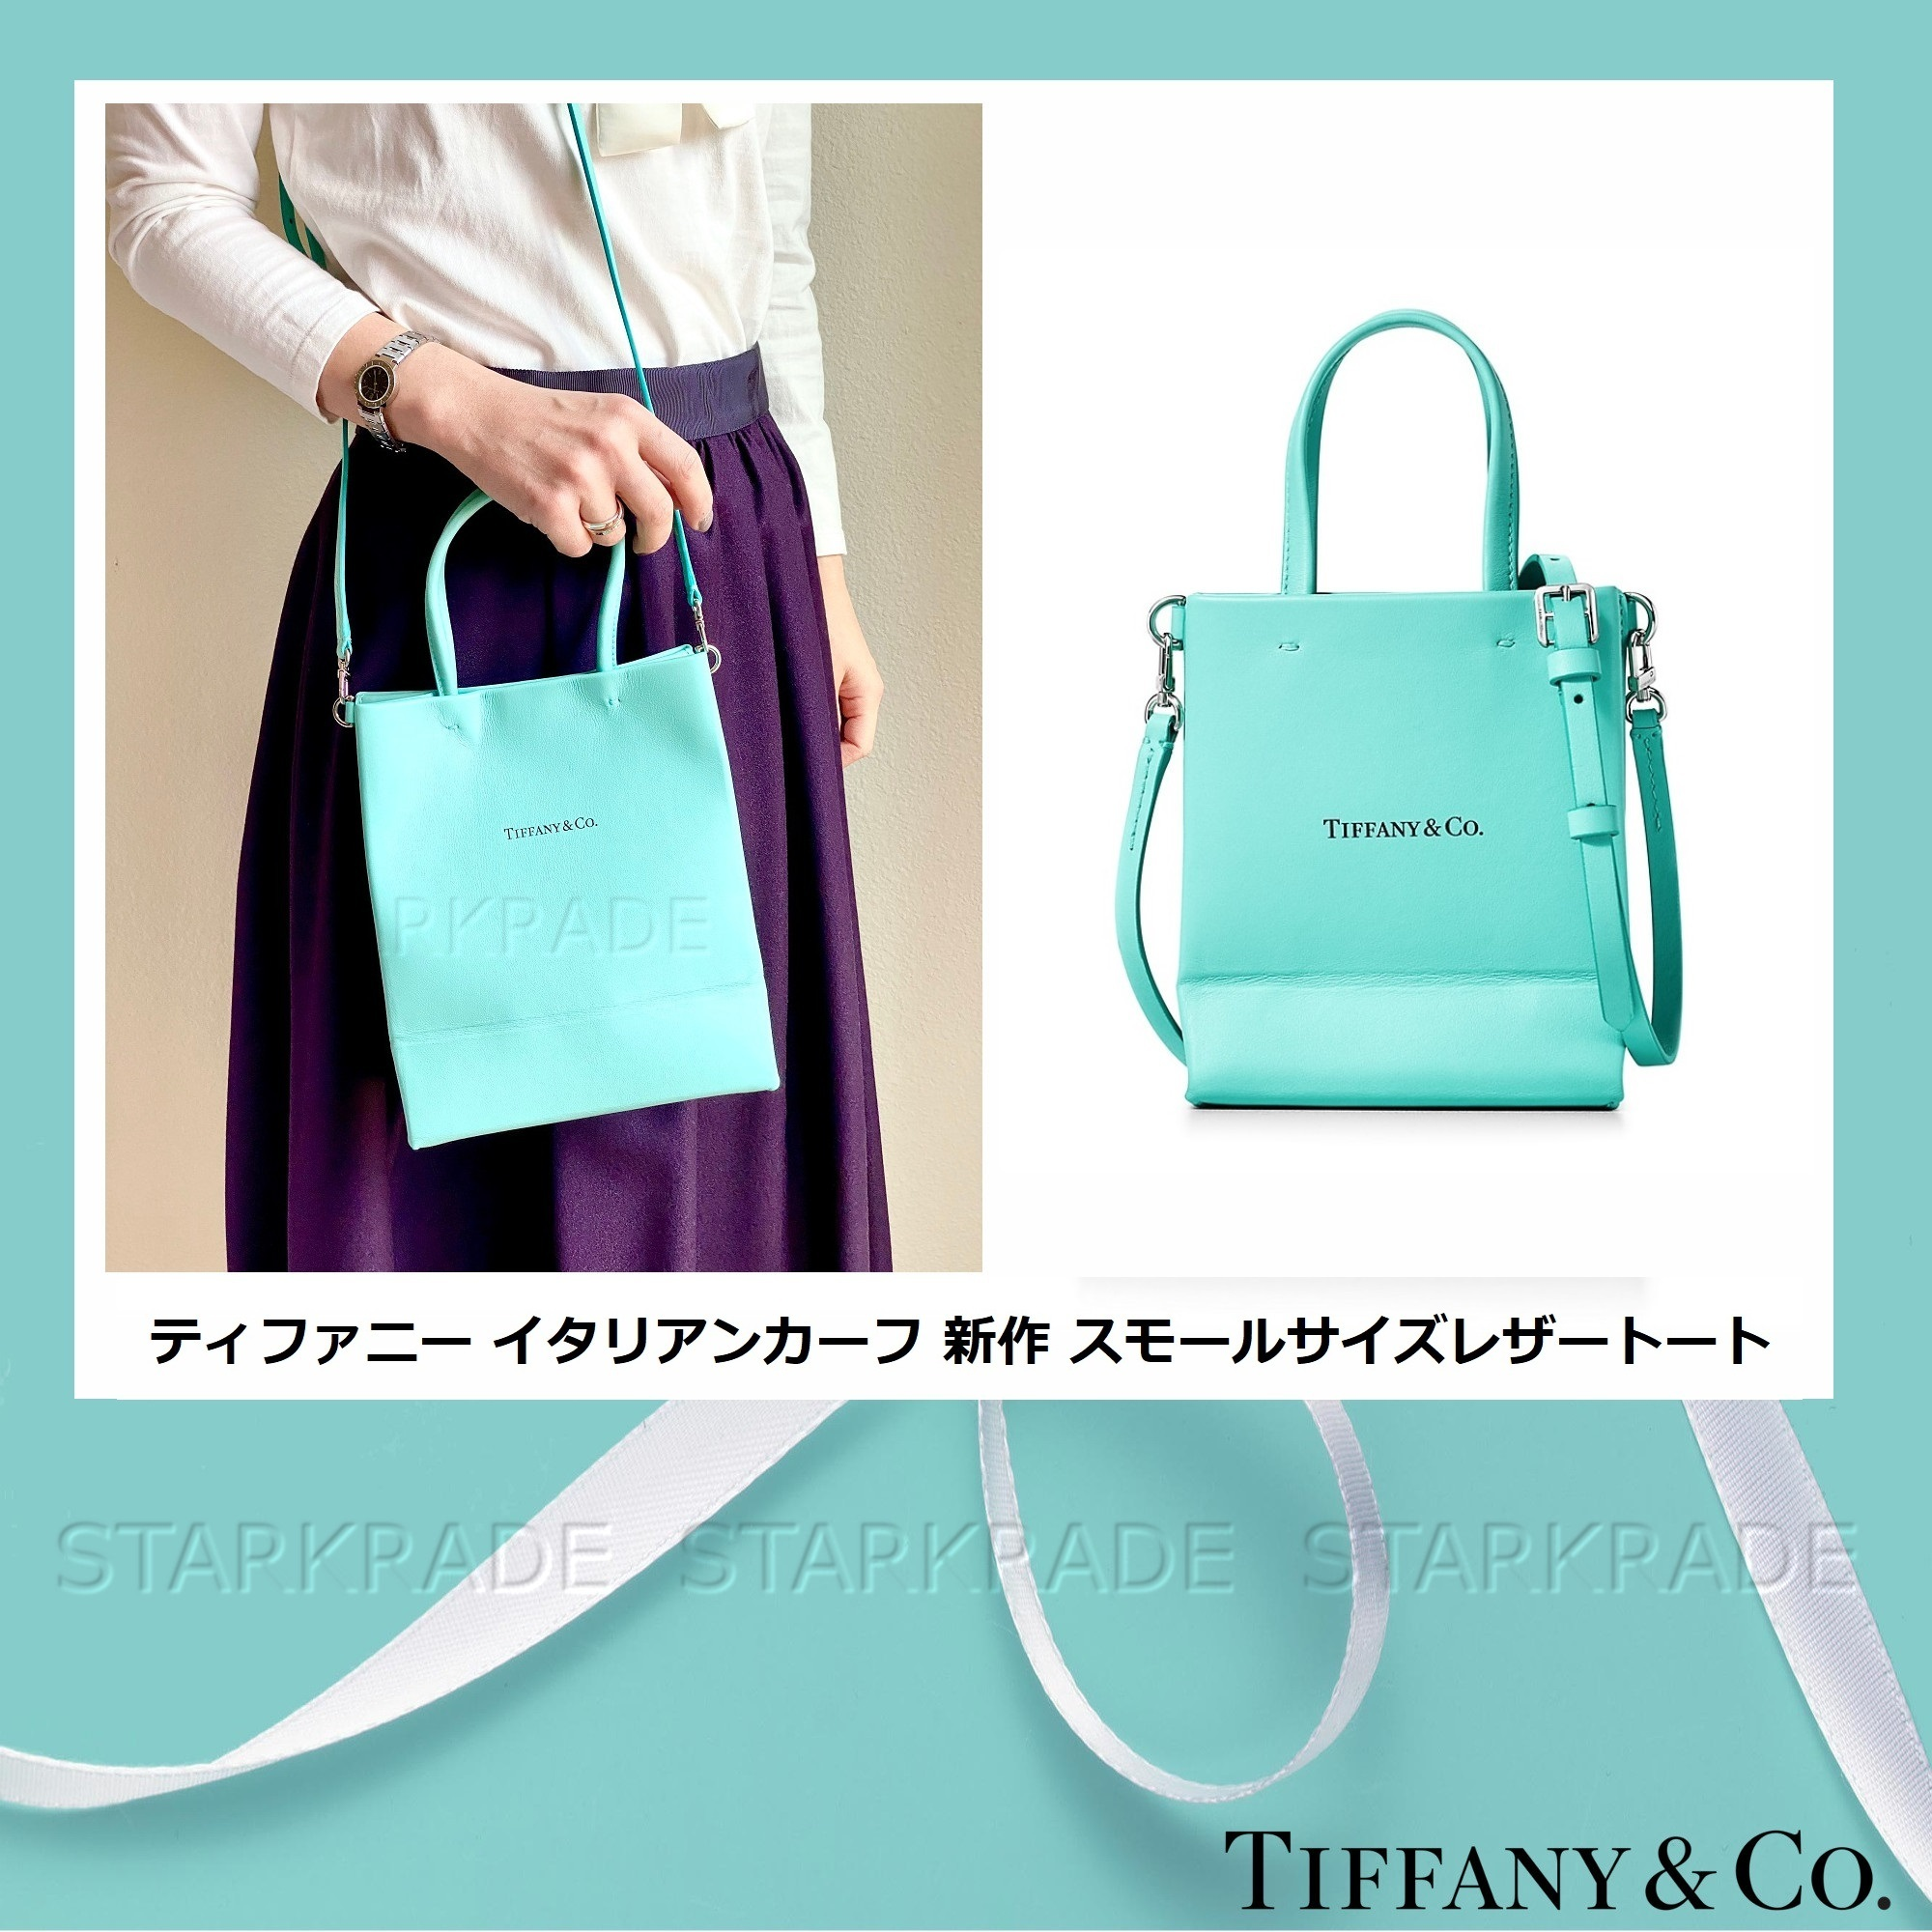 shop roberta chiarella tiffany & co